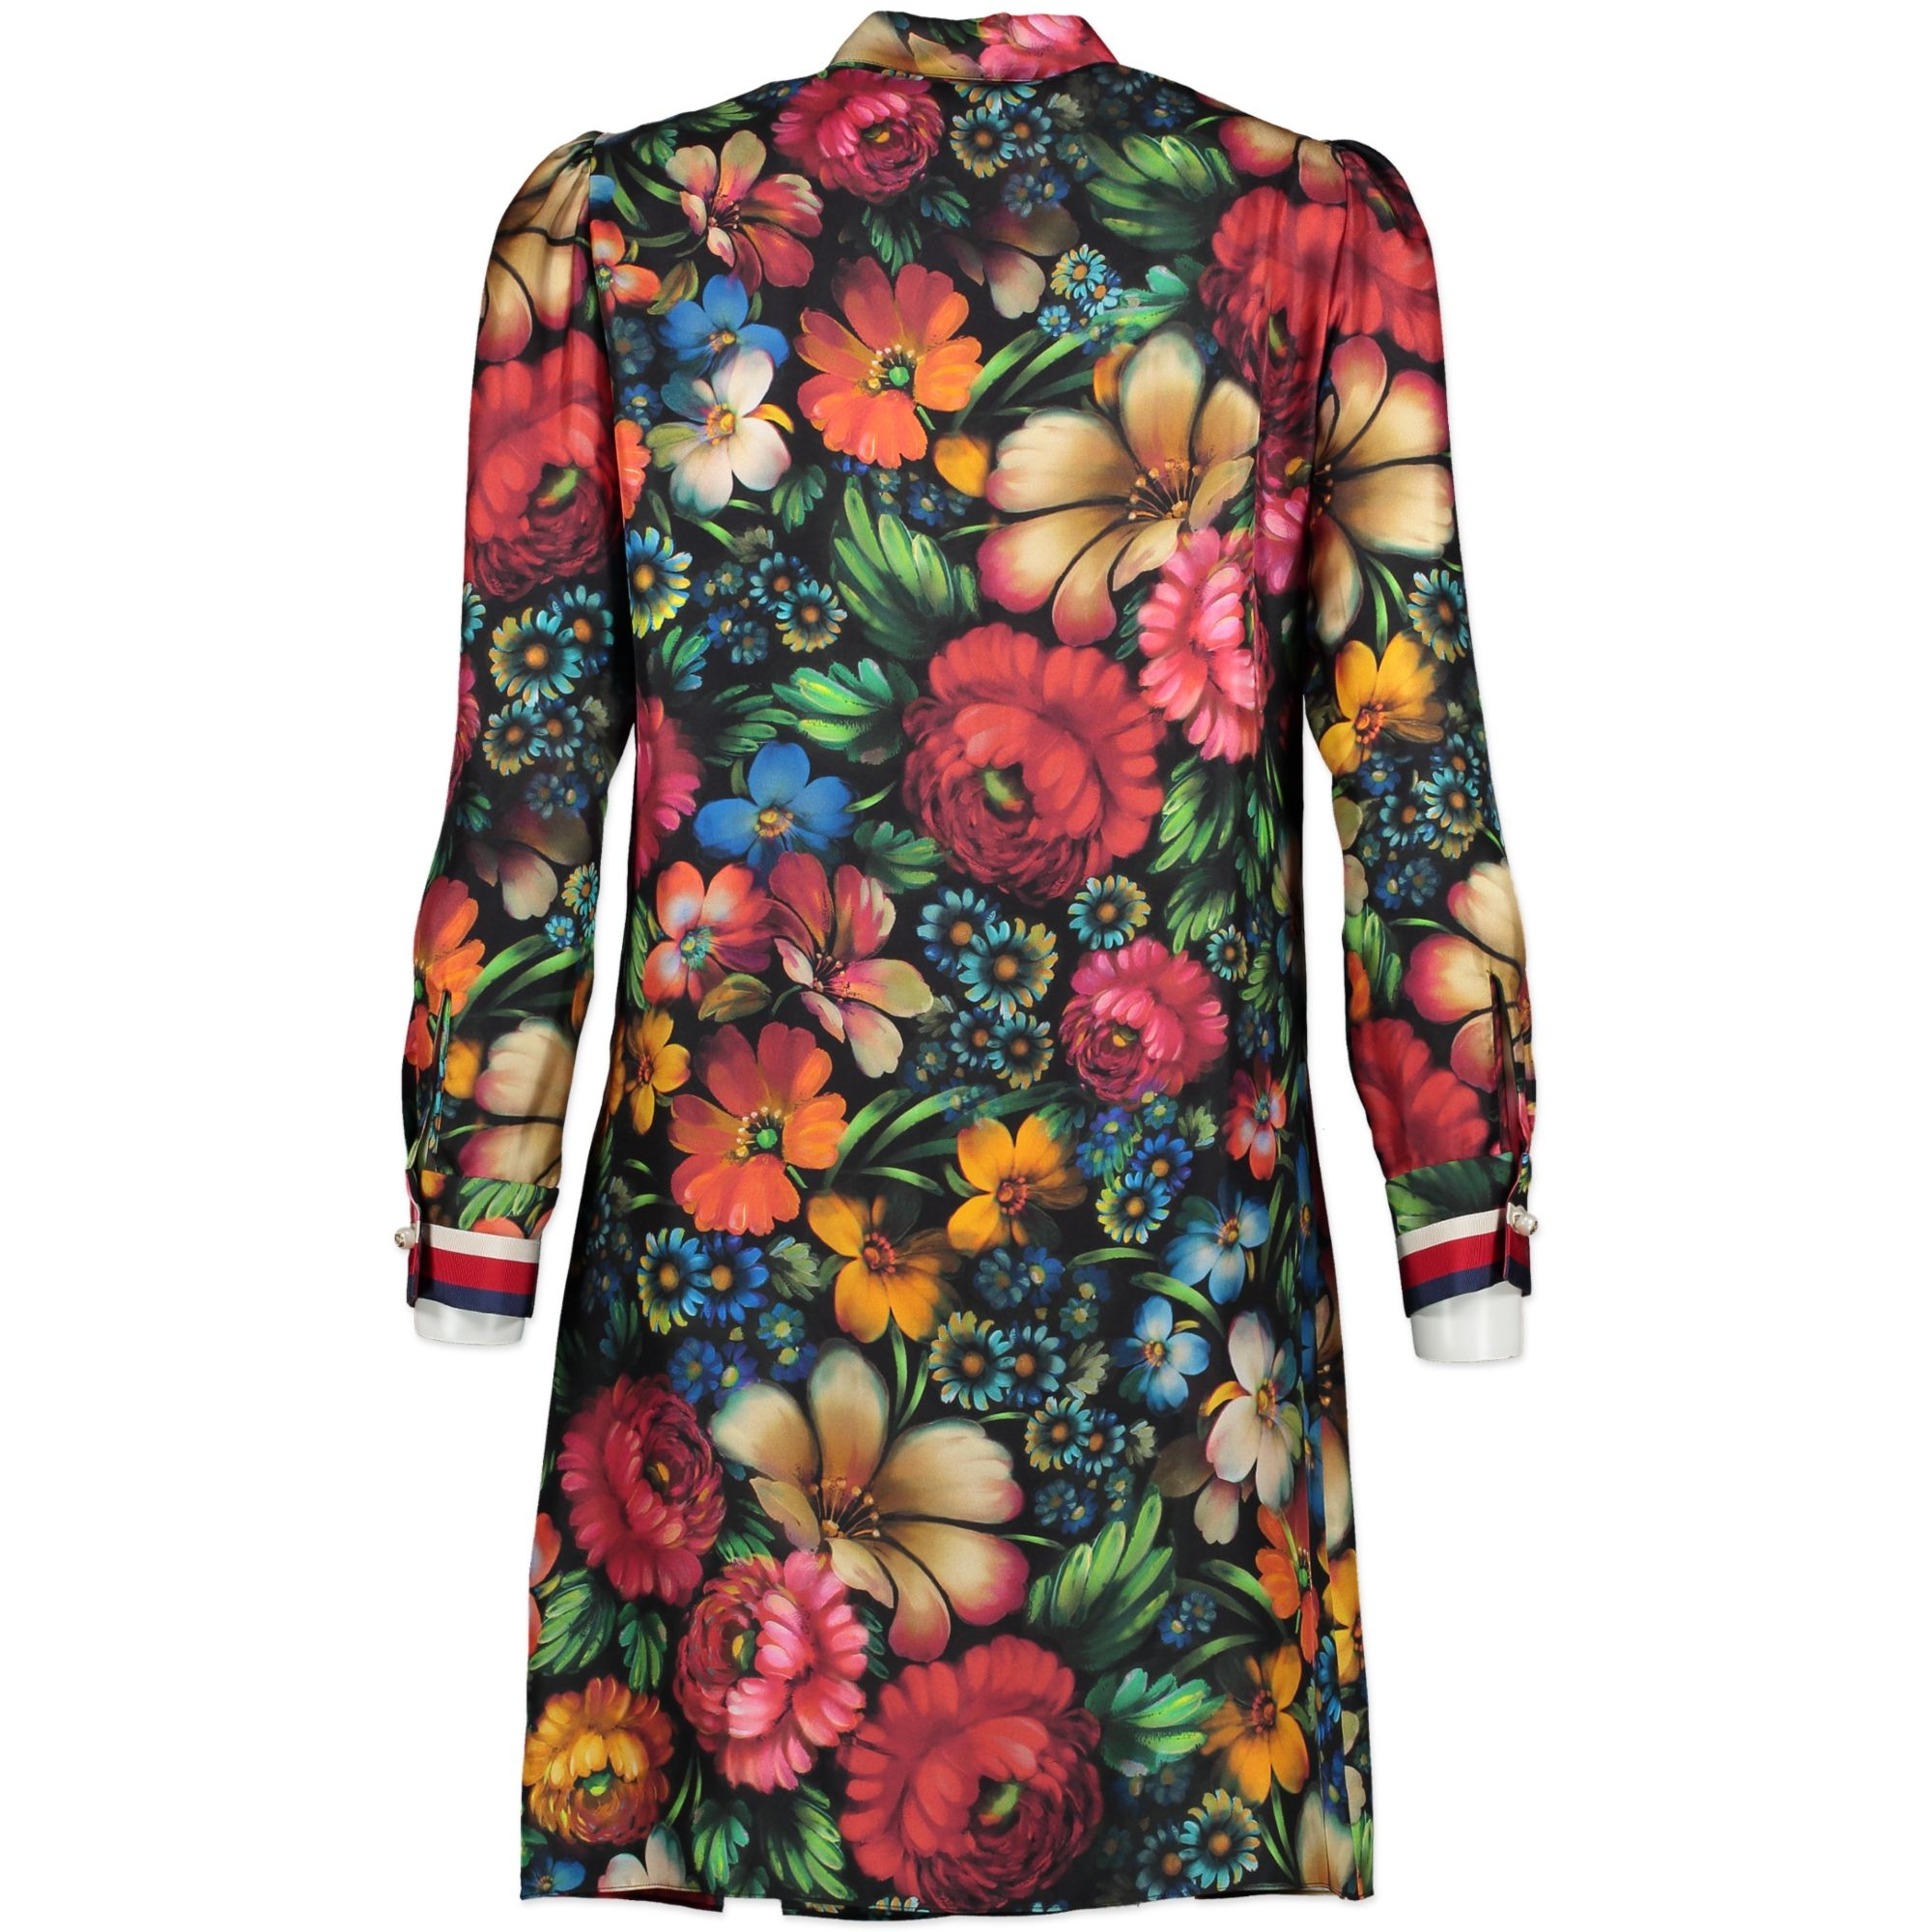 Gucci Floral Silk Shirt Dress - size IT40 for the best price available online at Labellov secondhand luxury